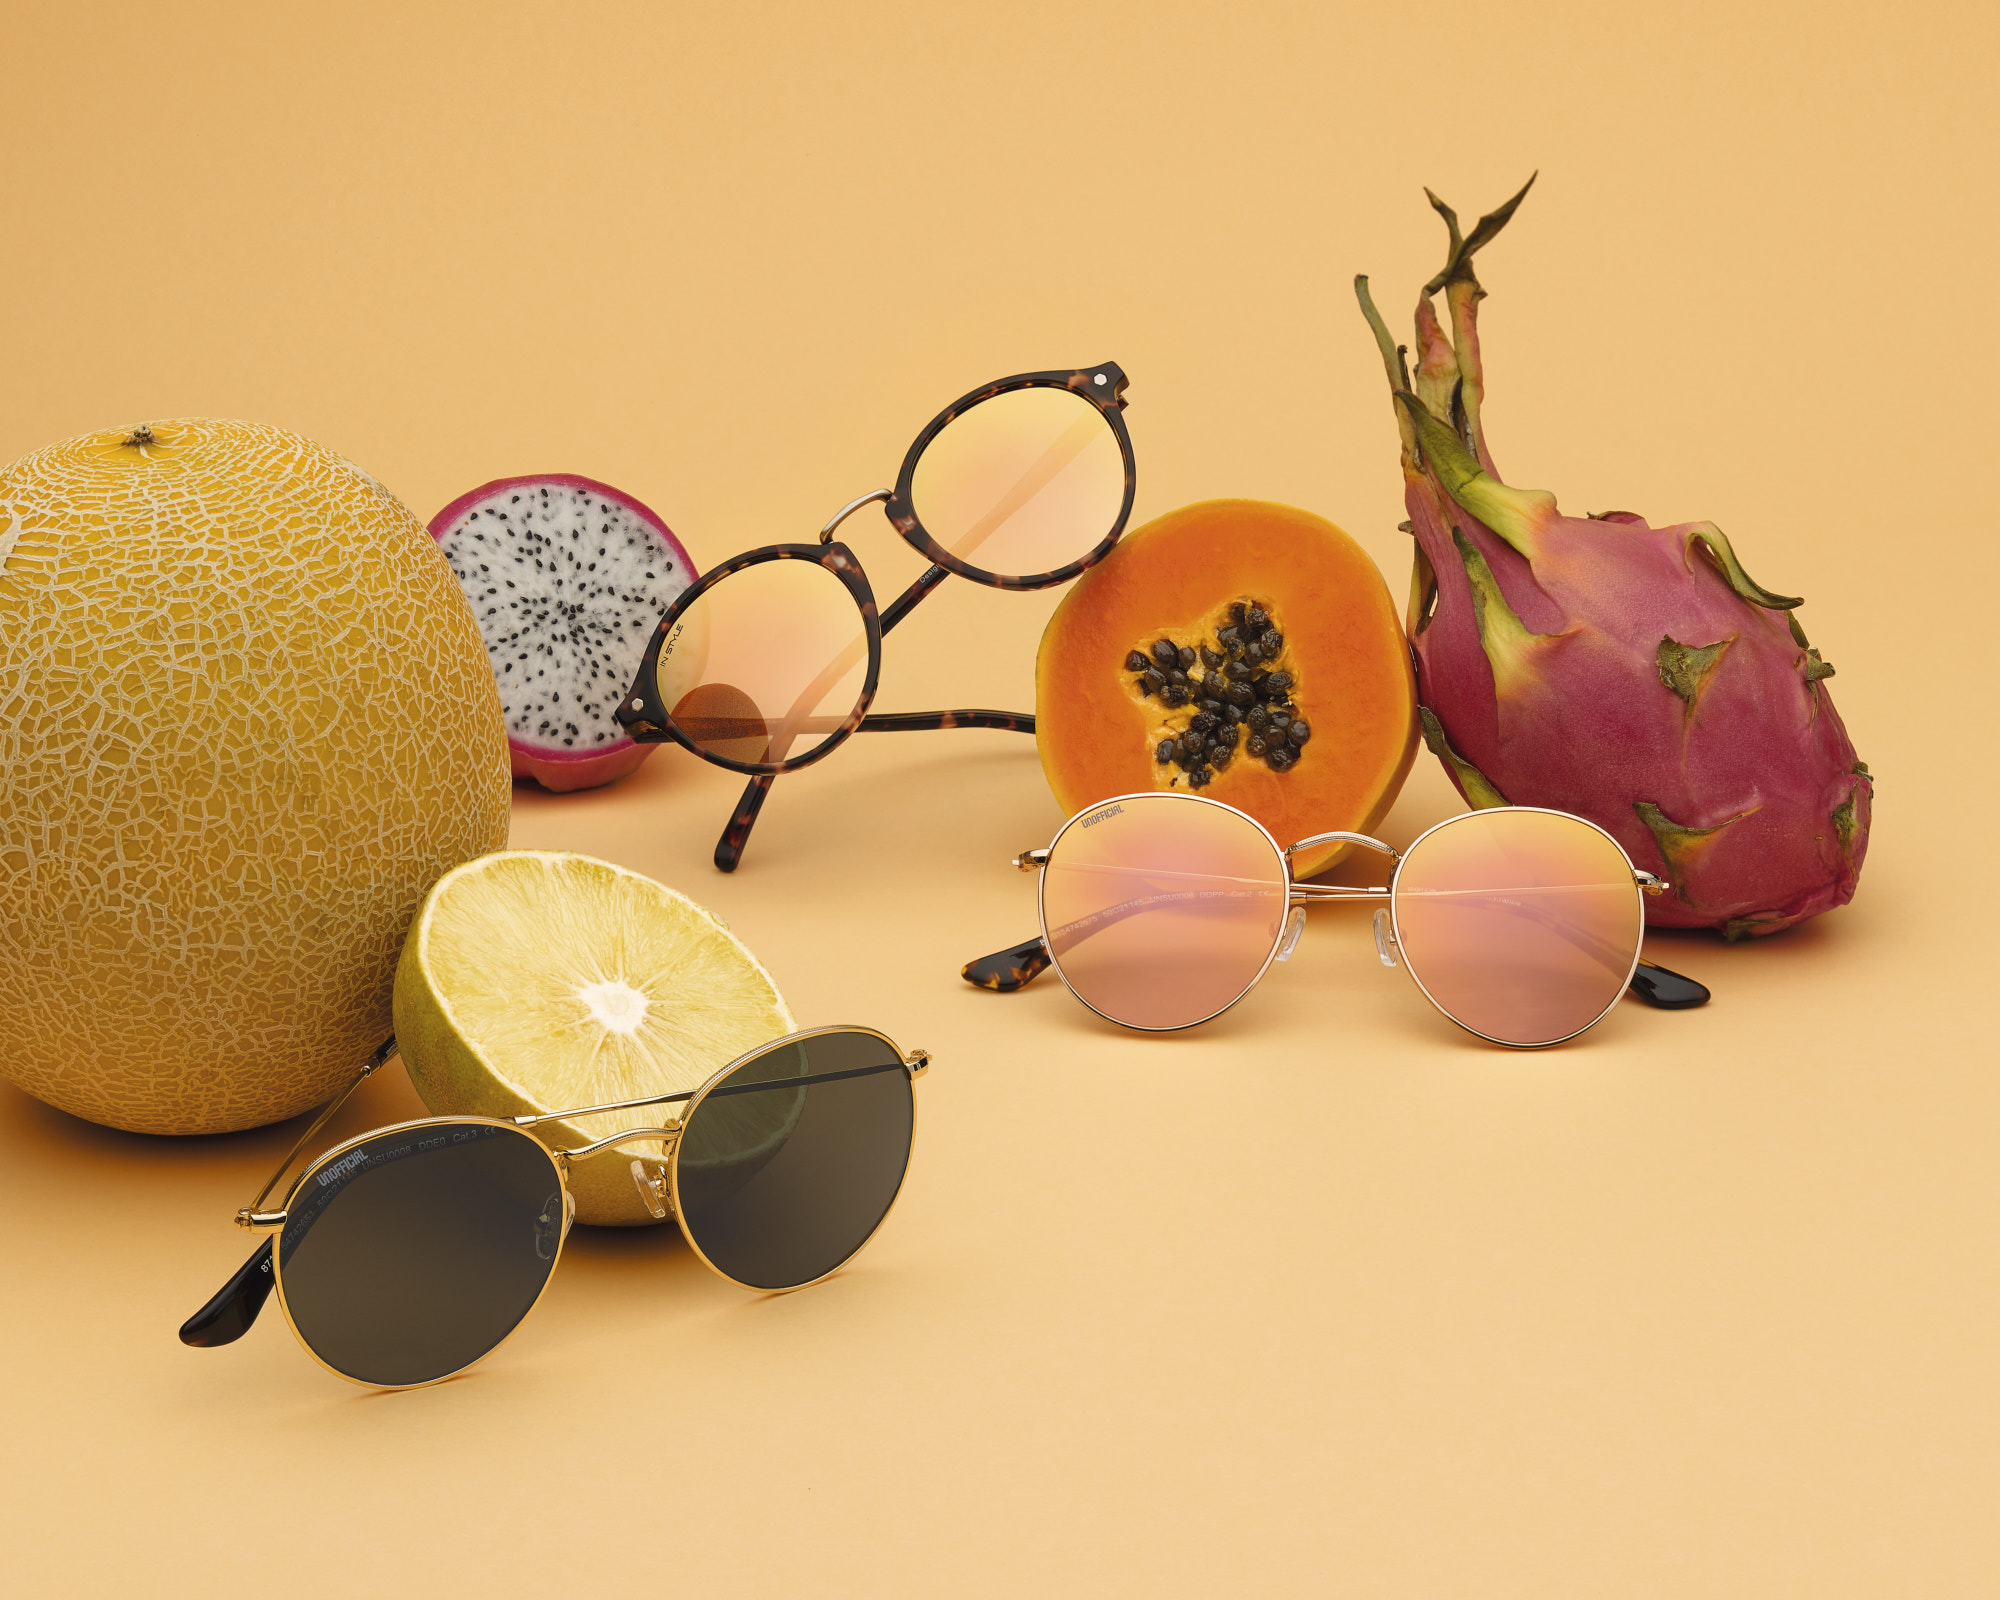 bernd-westphal-stillstars-apollo-optik-sunglasses-still-life-photography-006